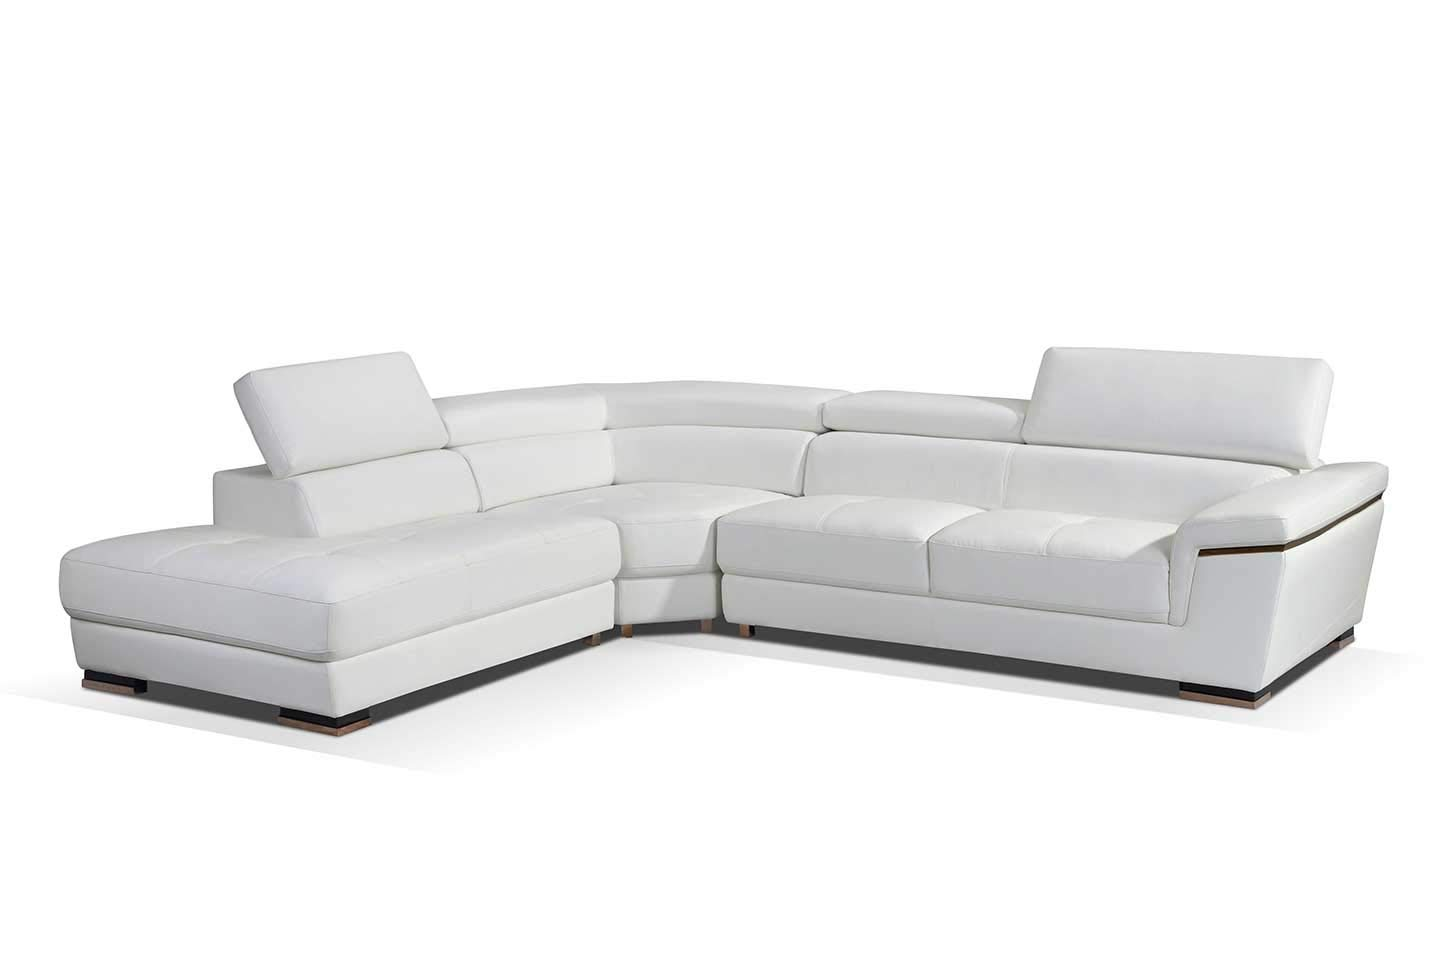 ESF Furniture 2383 Leather Left Hand Facing Sectional Sofa in White